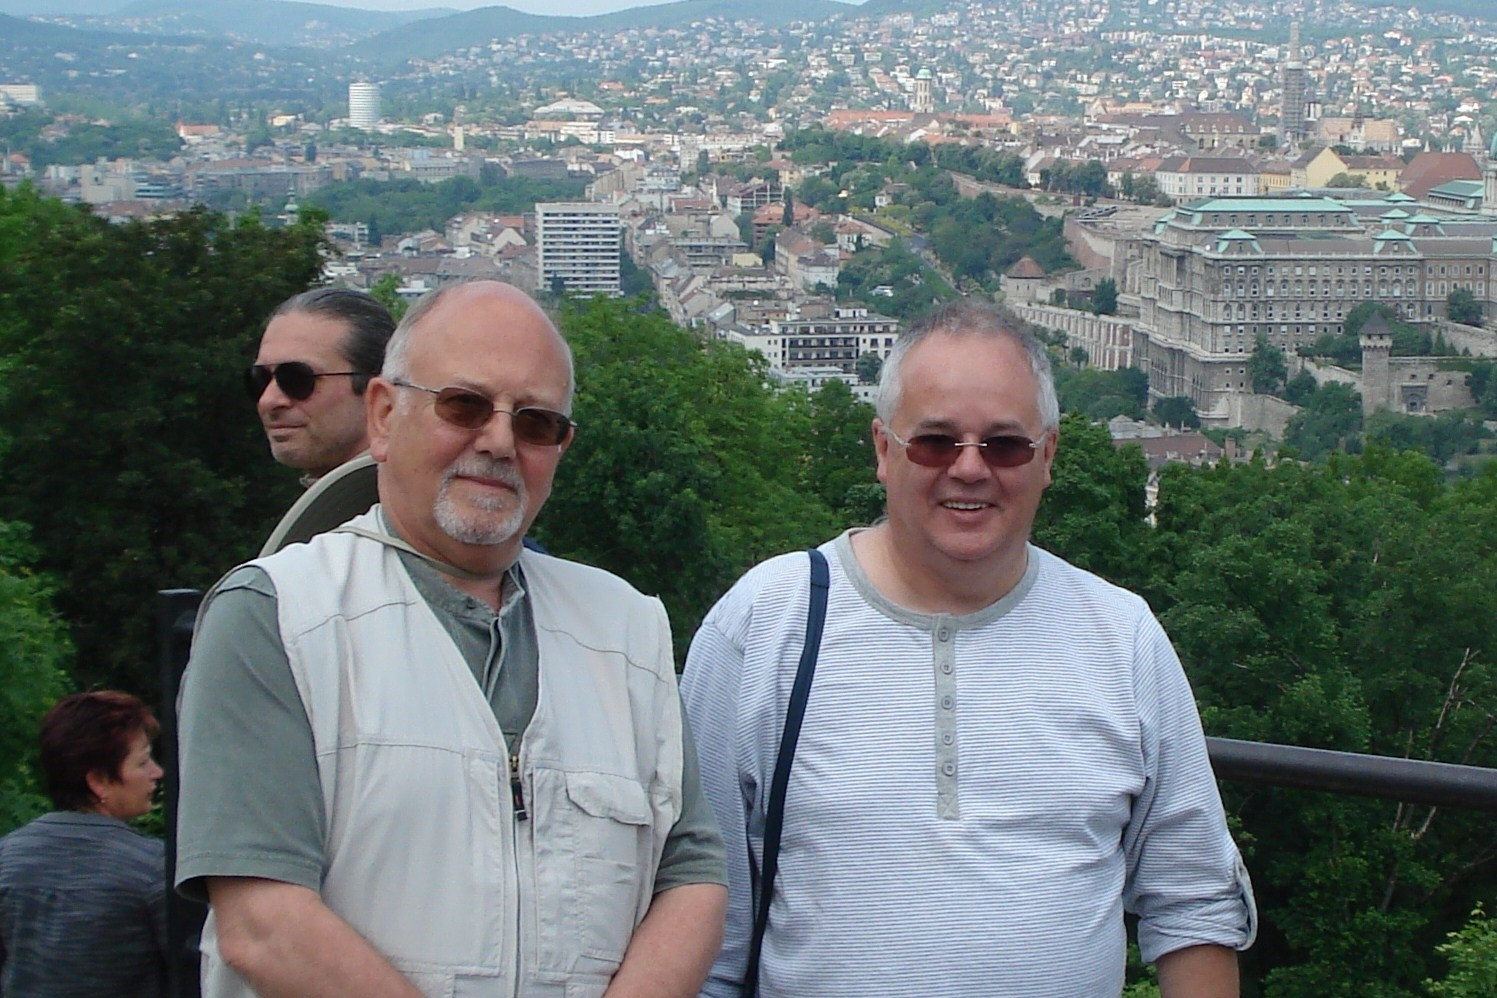 Kingey & Doughie hitting the heights in Budapest; my first WISC trip with the lads